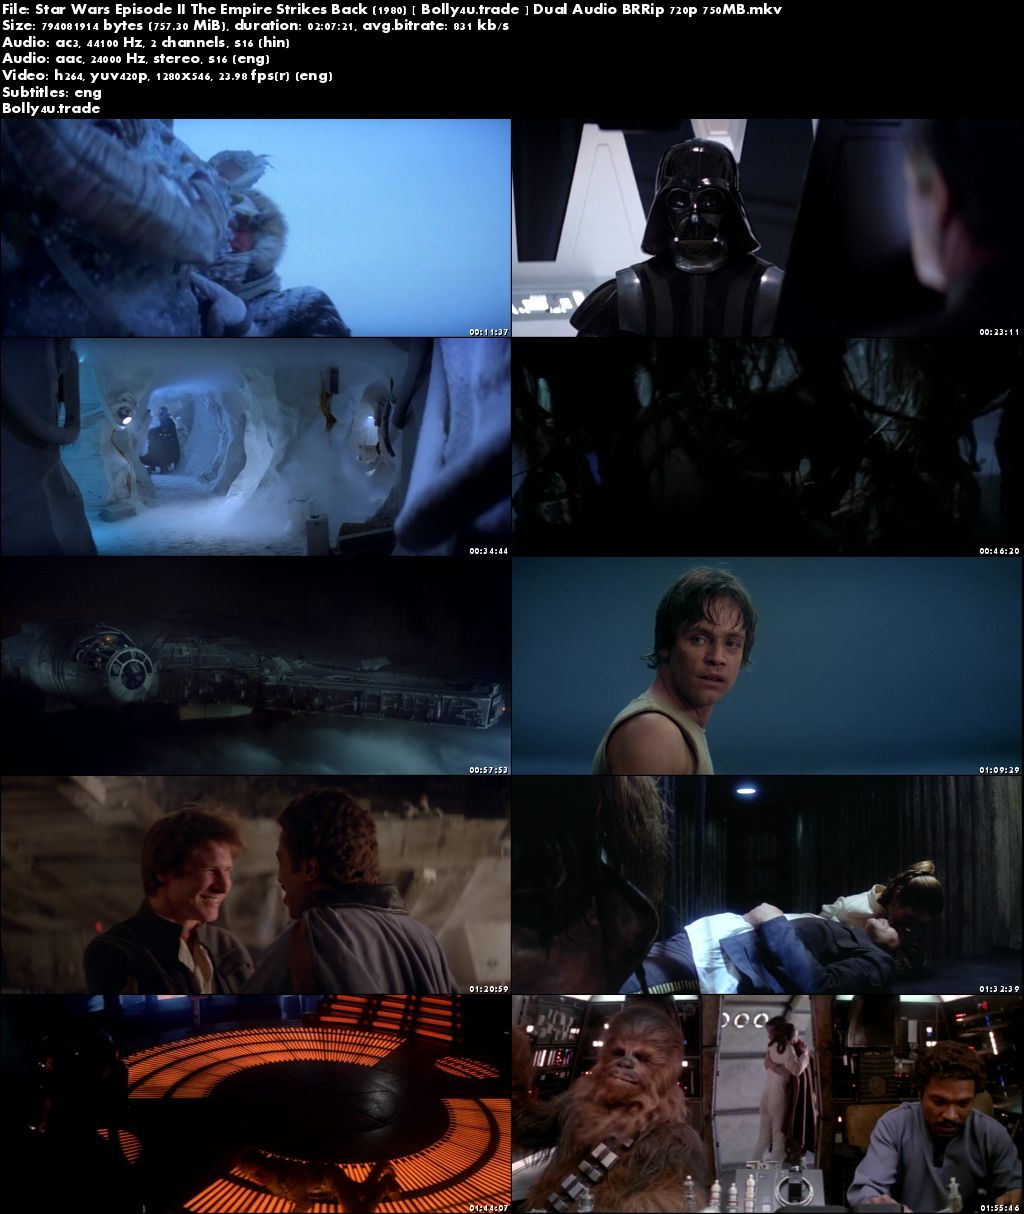 Star Wars Episode II The Empire Strikes Back 1980 BRRip 750MB Hindi Dual Audio 720p Download